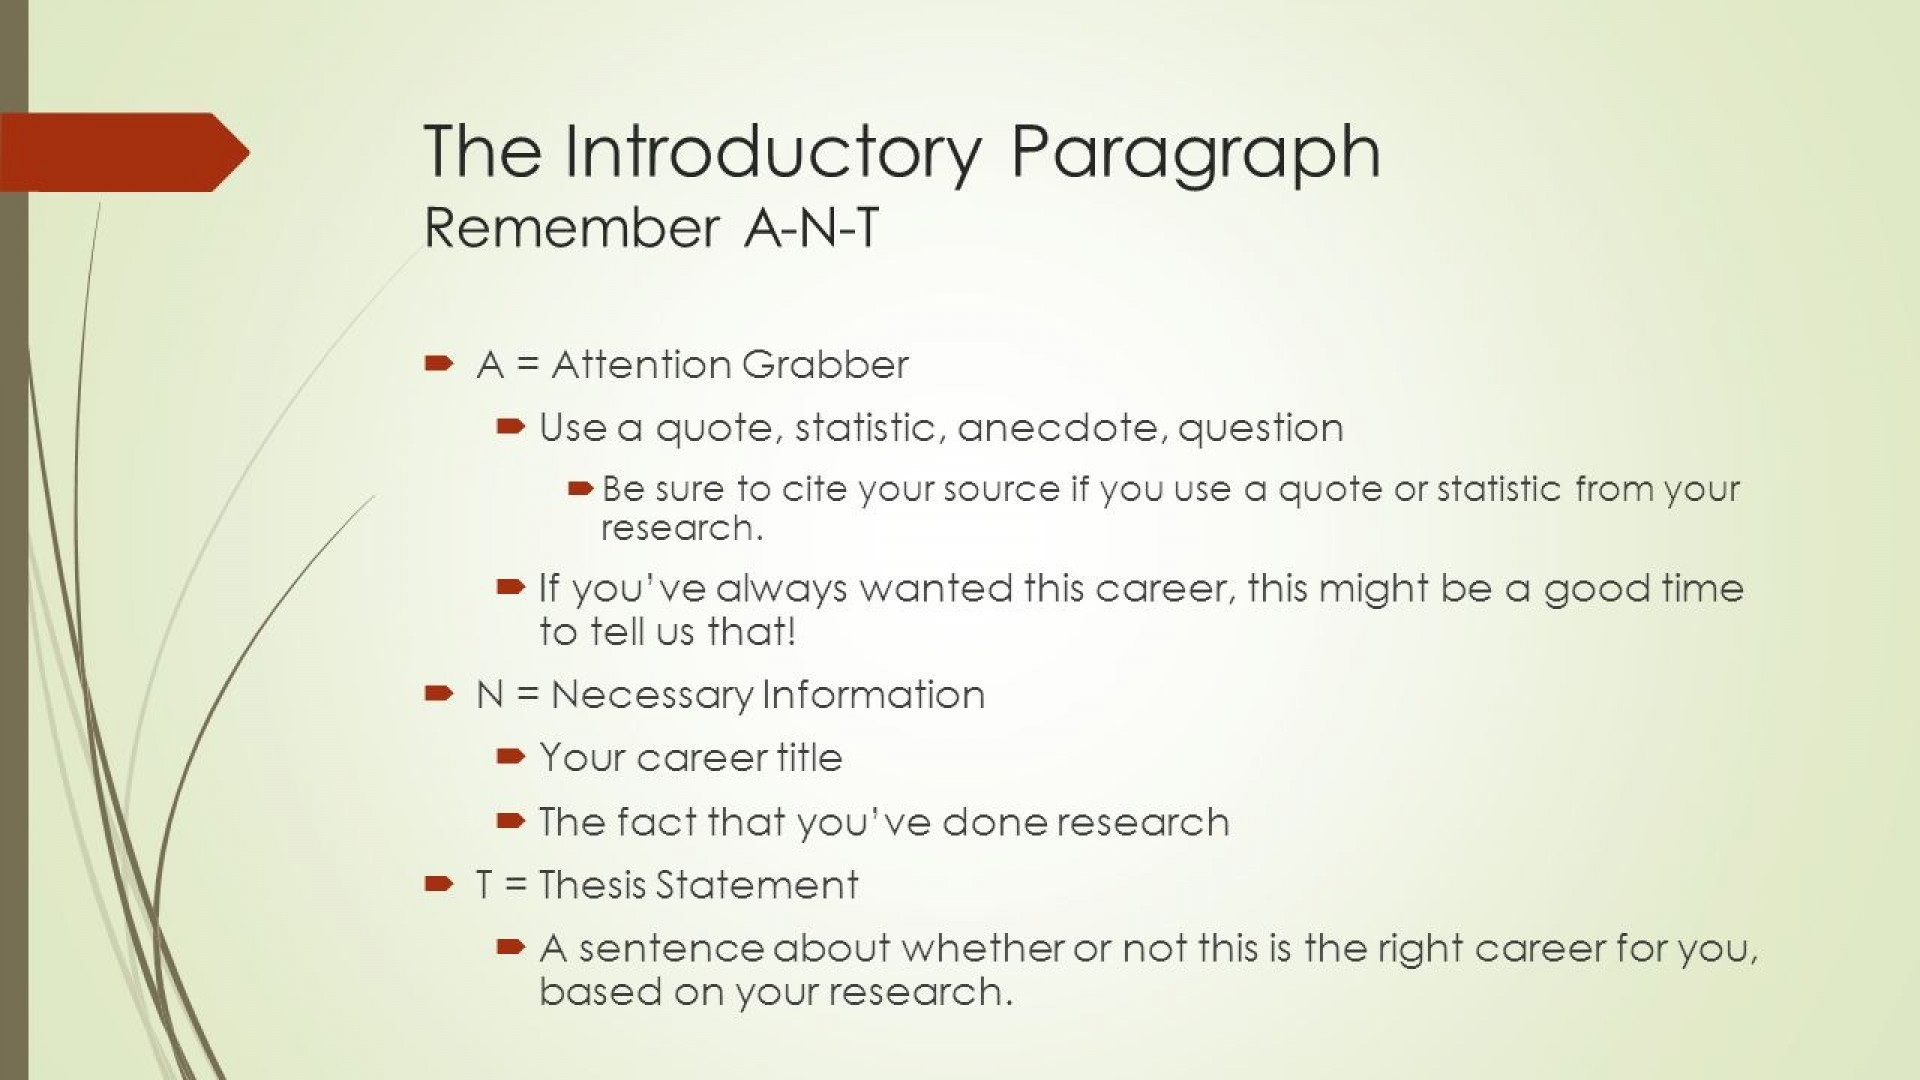 004 Career Research Paper Introduction Paragraph Slide 3 Striking 1920